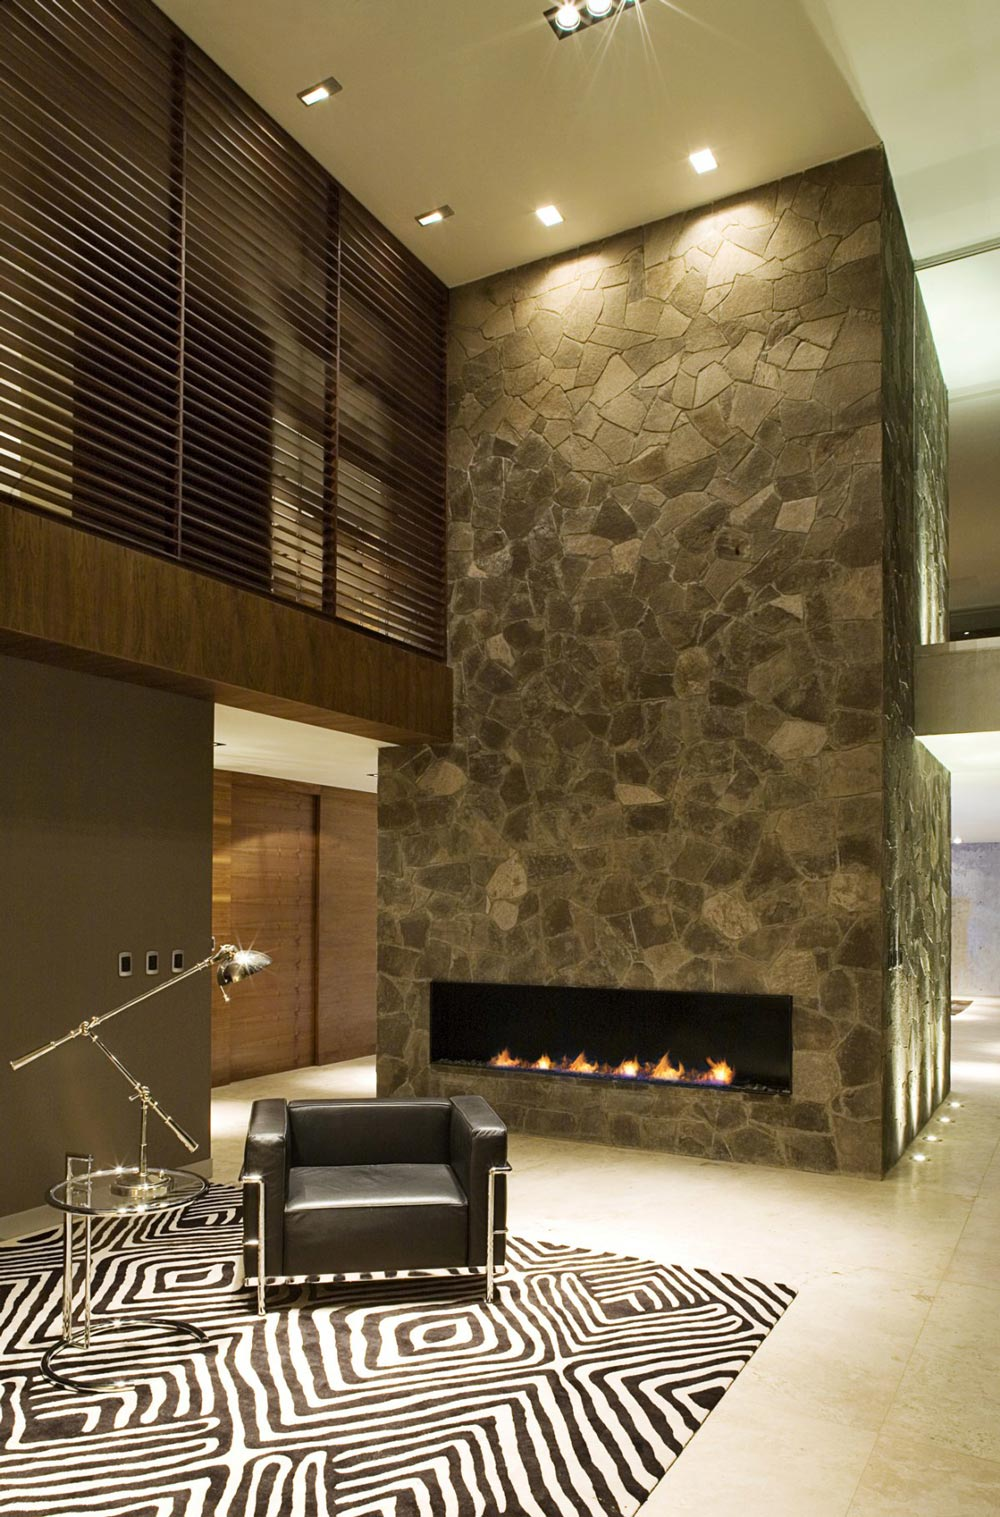 Contemporary Fireplace, Rug, GP House in Hidalgo, Mexico by Bitar Arquitectos